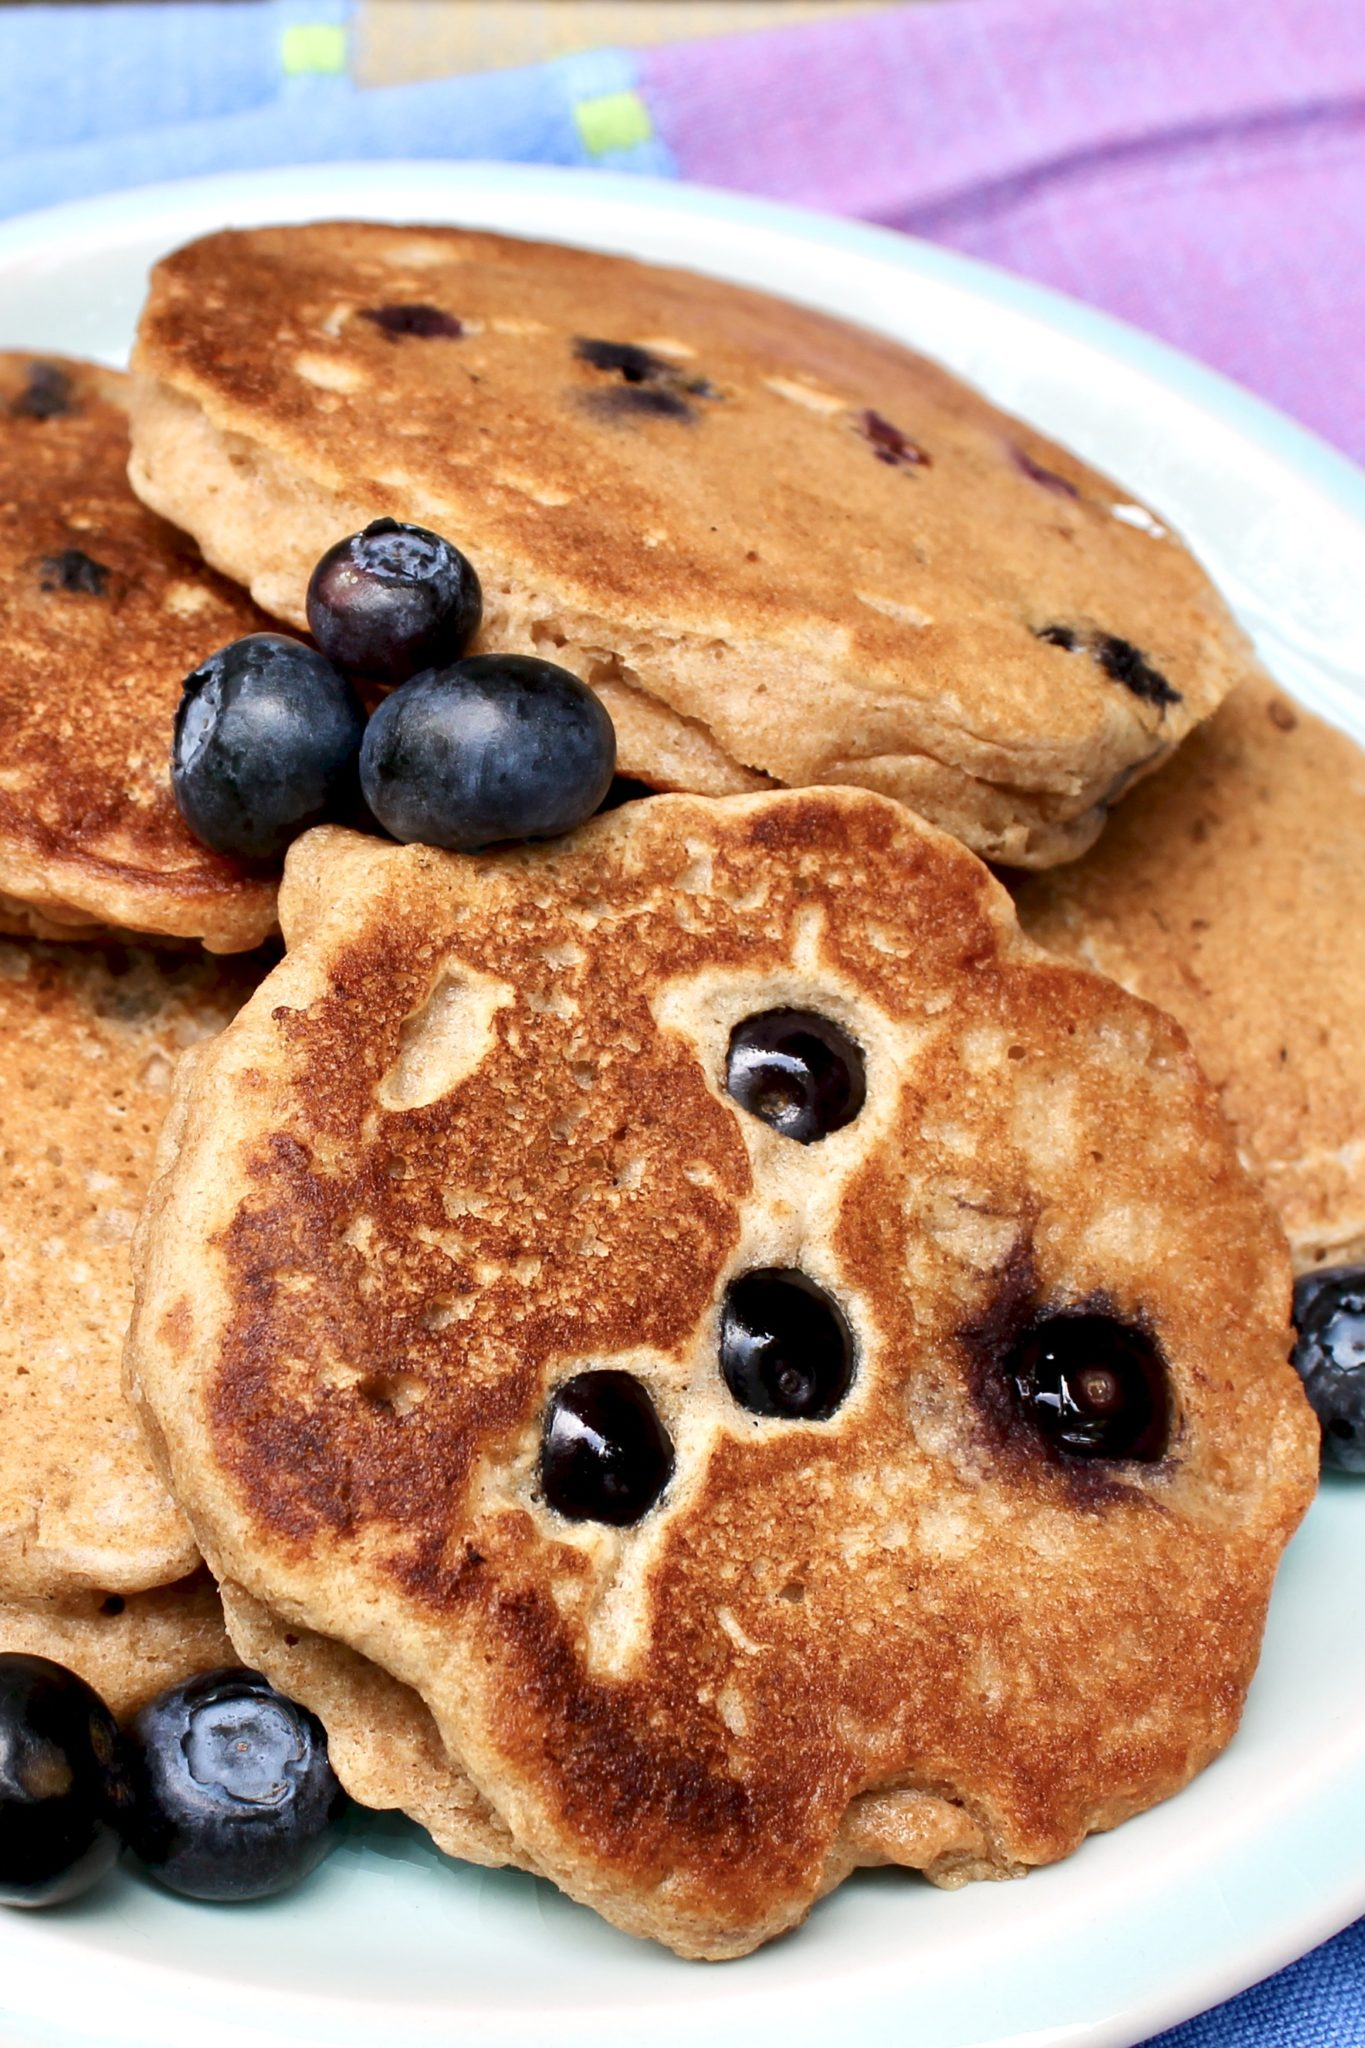 Looking for a light, fluffy pancake recipe that offers a nutritional boost? Packed with whole grains and fiber, this delicious stack is your answer!